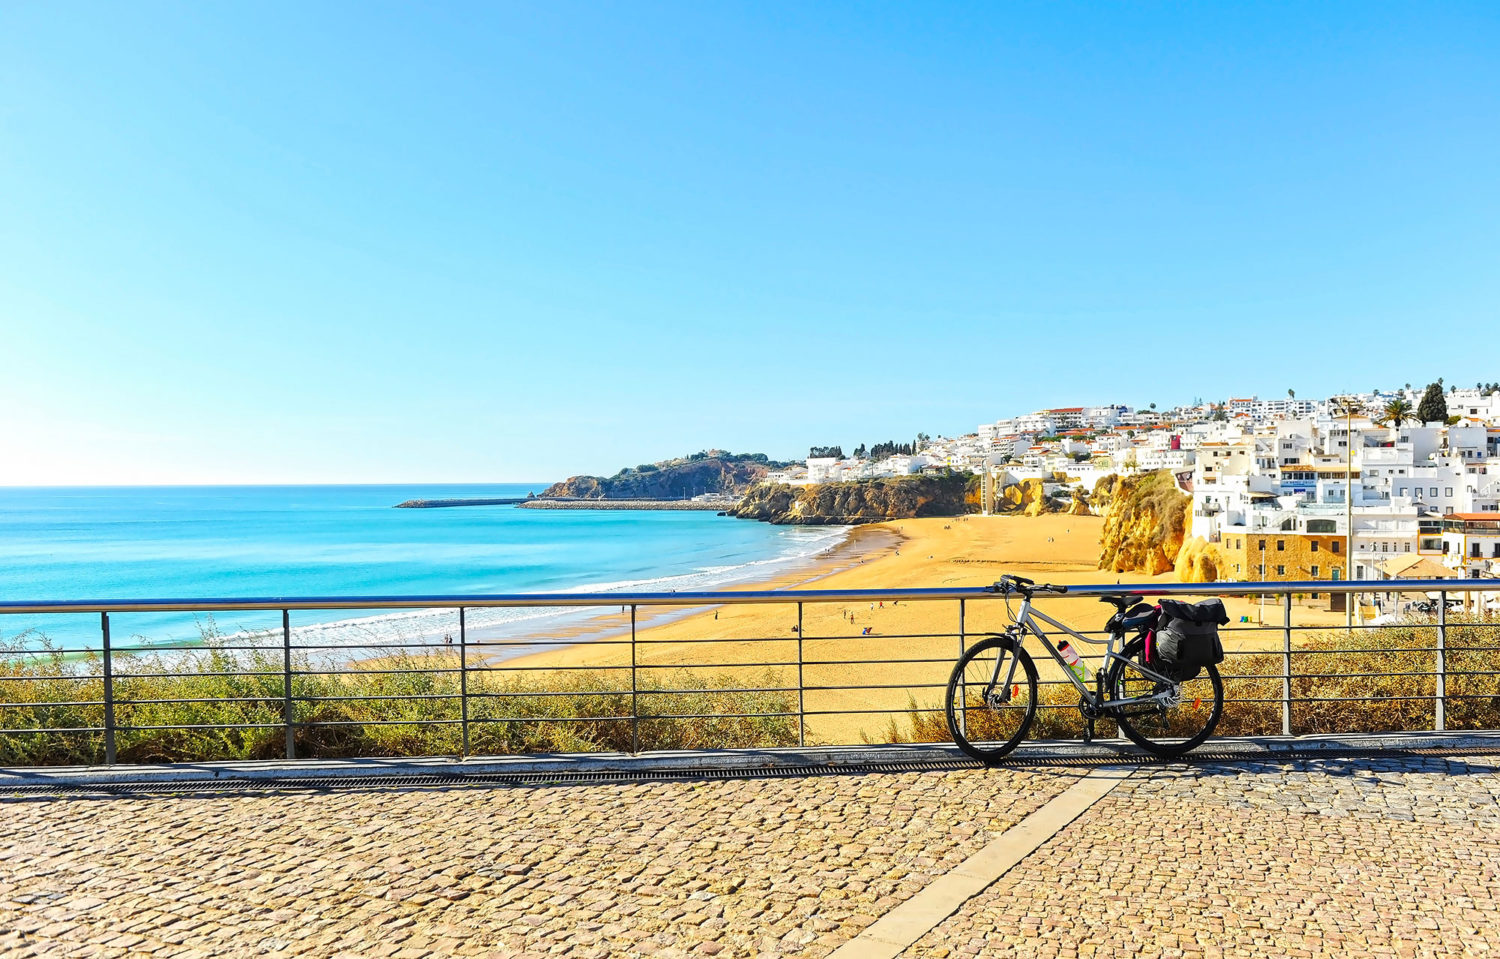 Bicycle near a sandy beach and a seaside town in Portugal